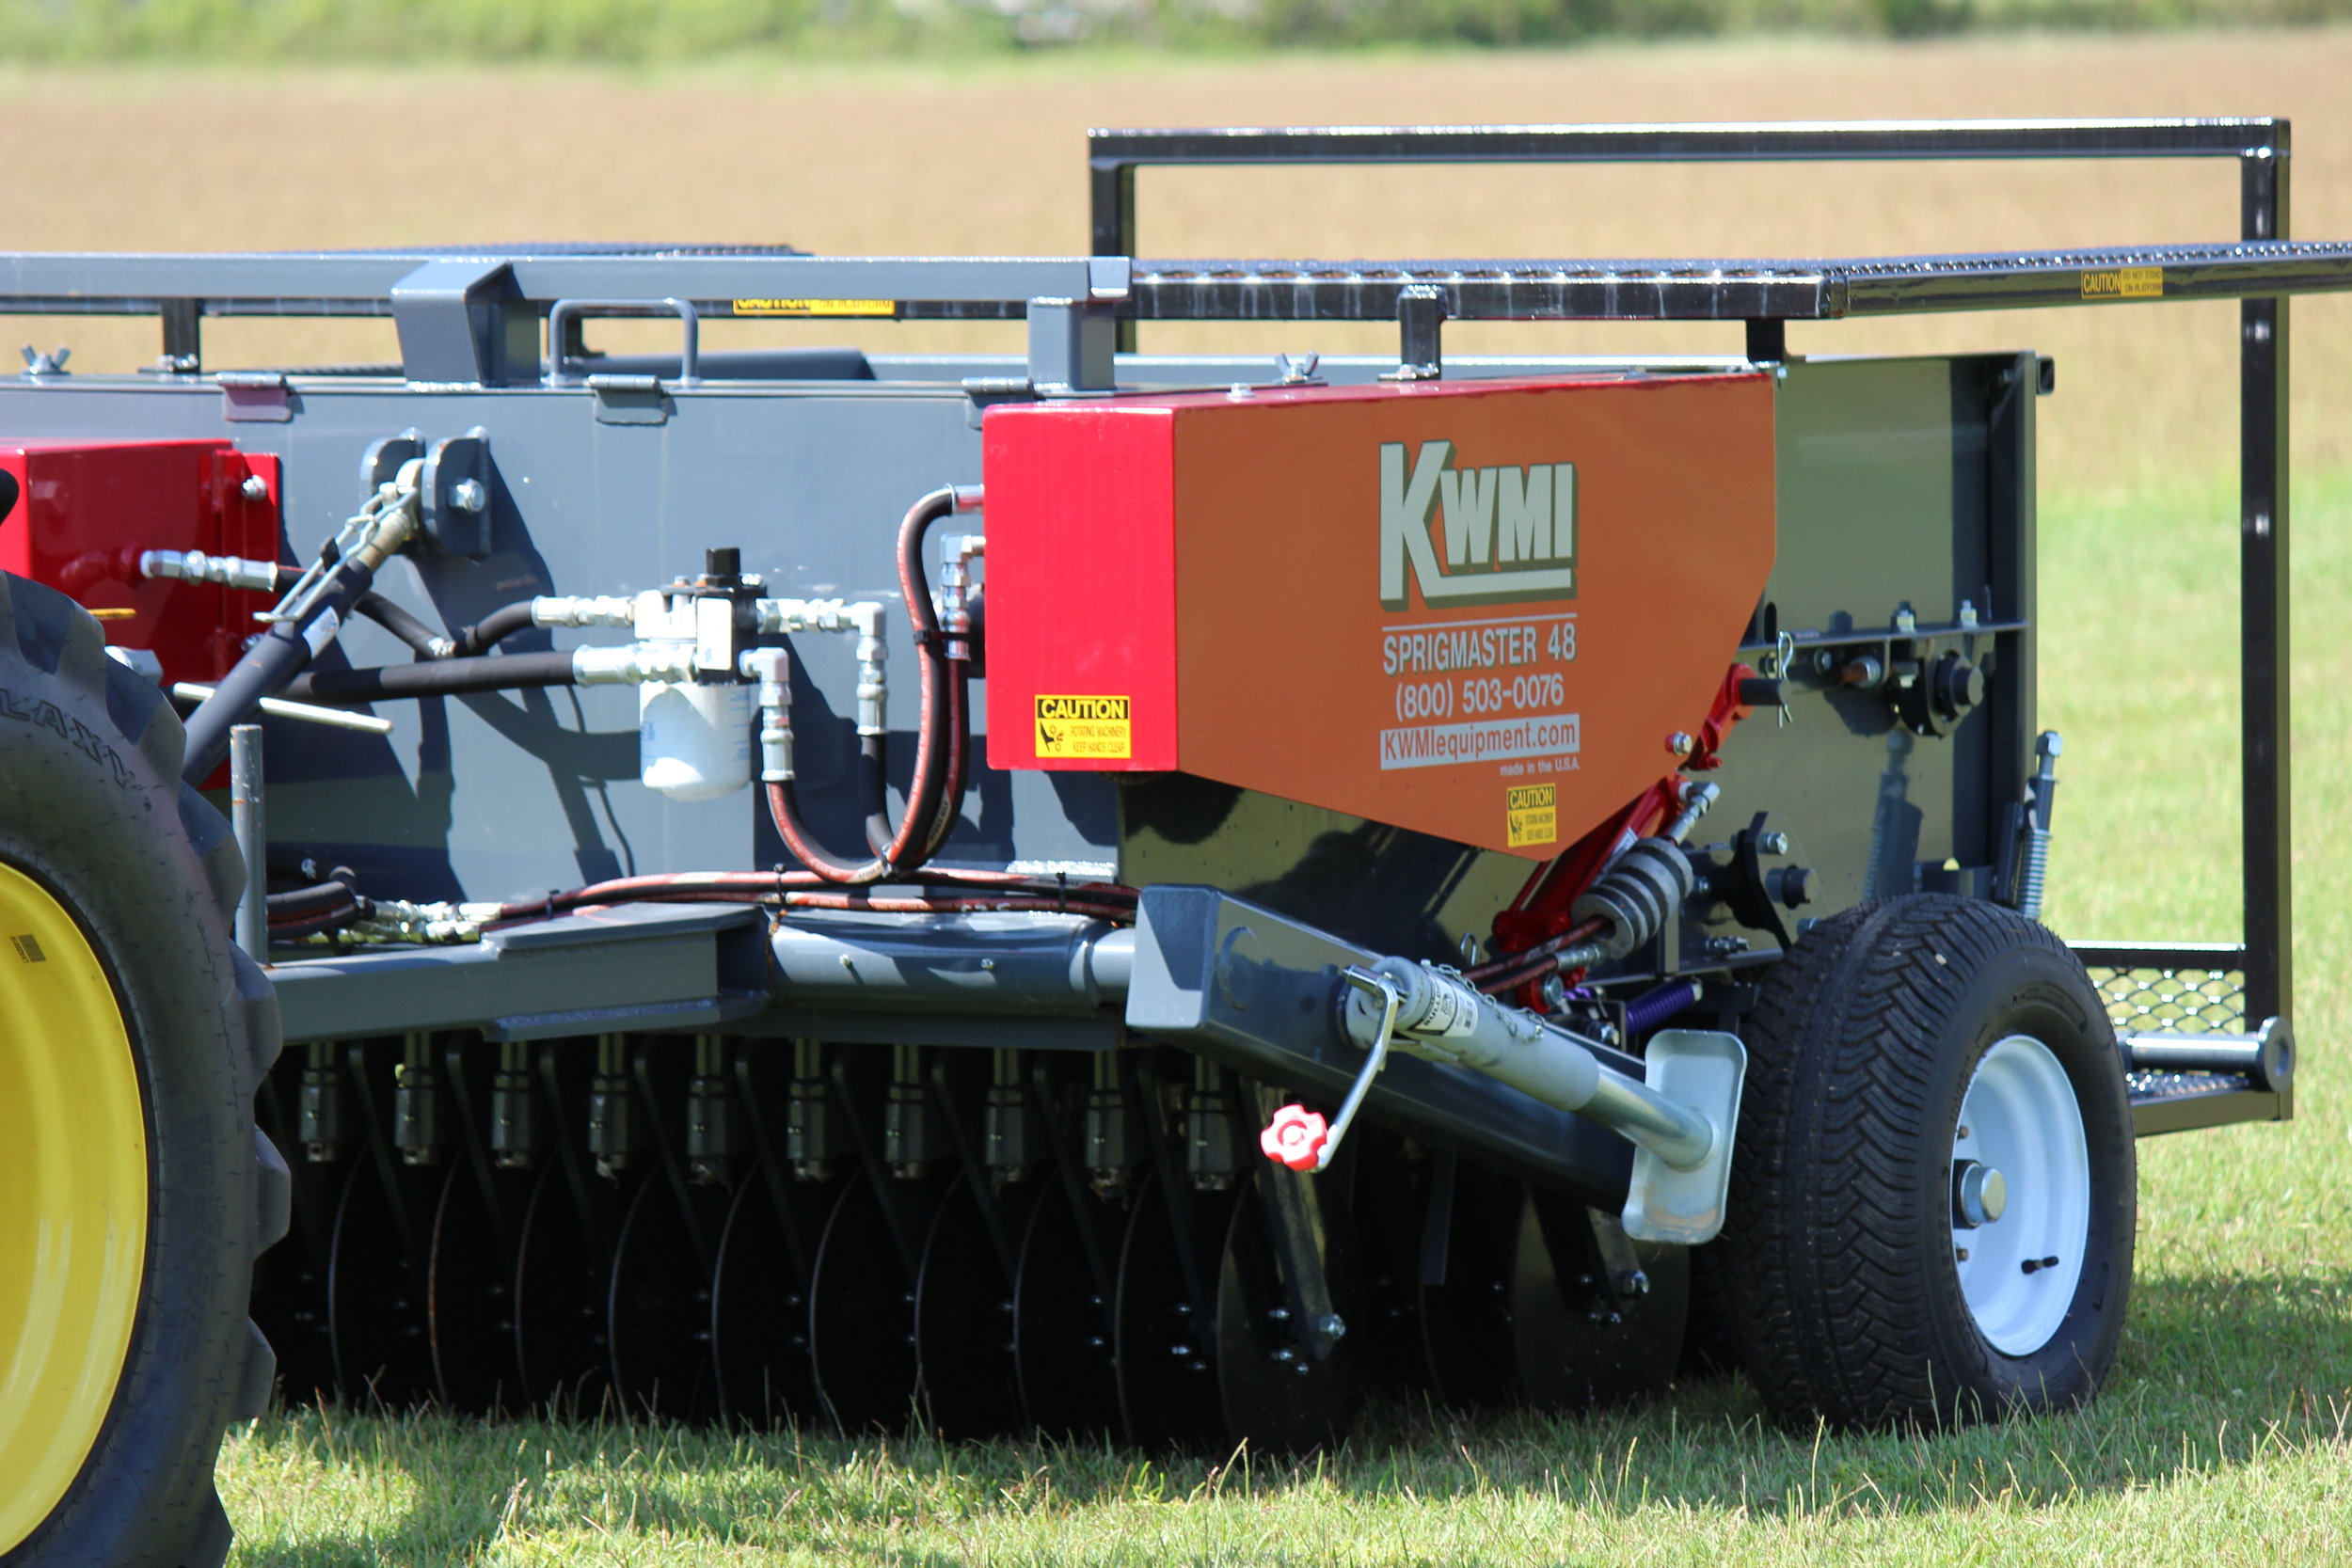 Sprig Planter | Sod to Sprigs In One Pass — KWMI Turf and